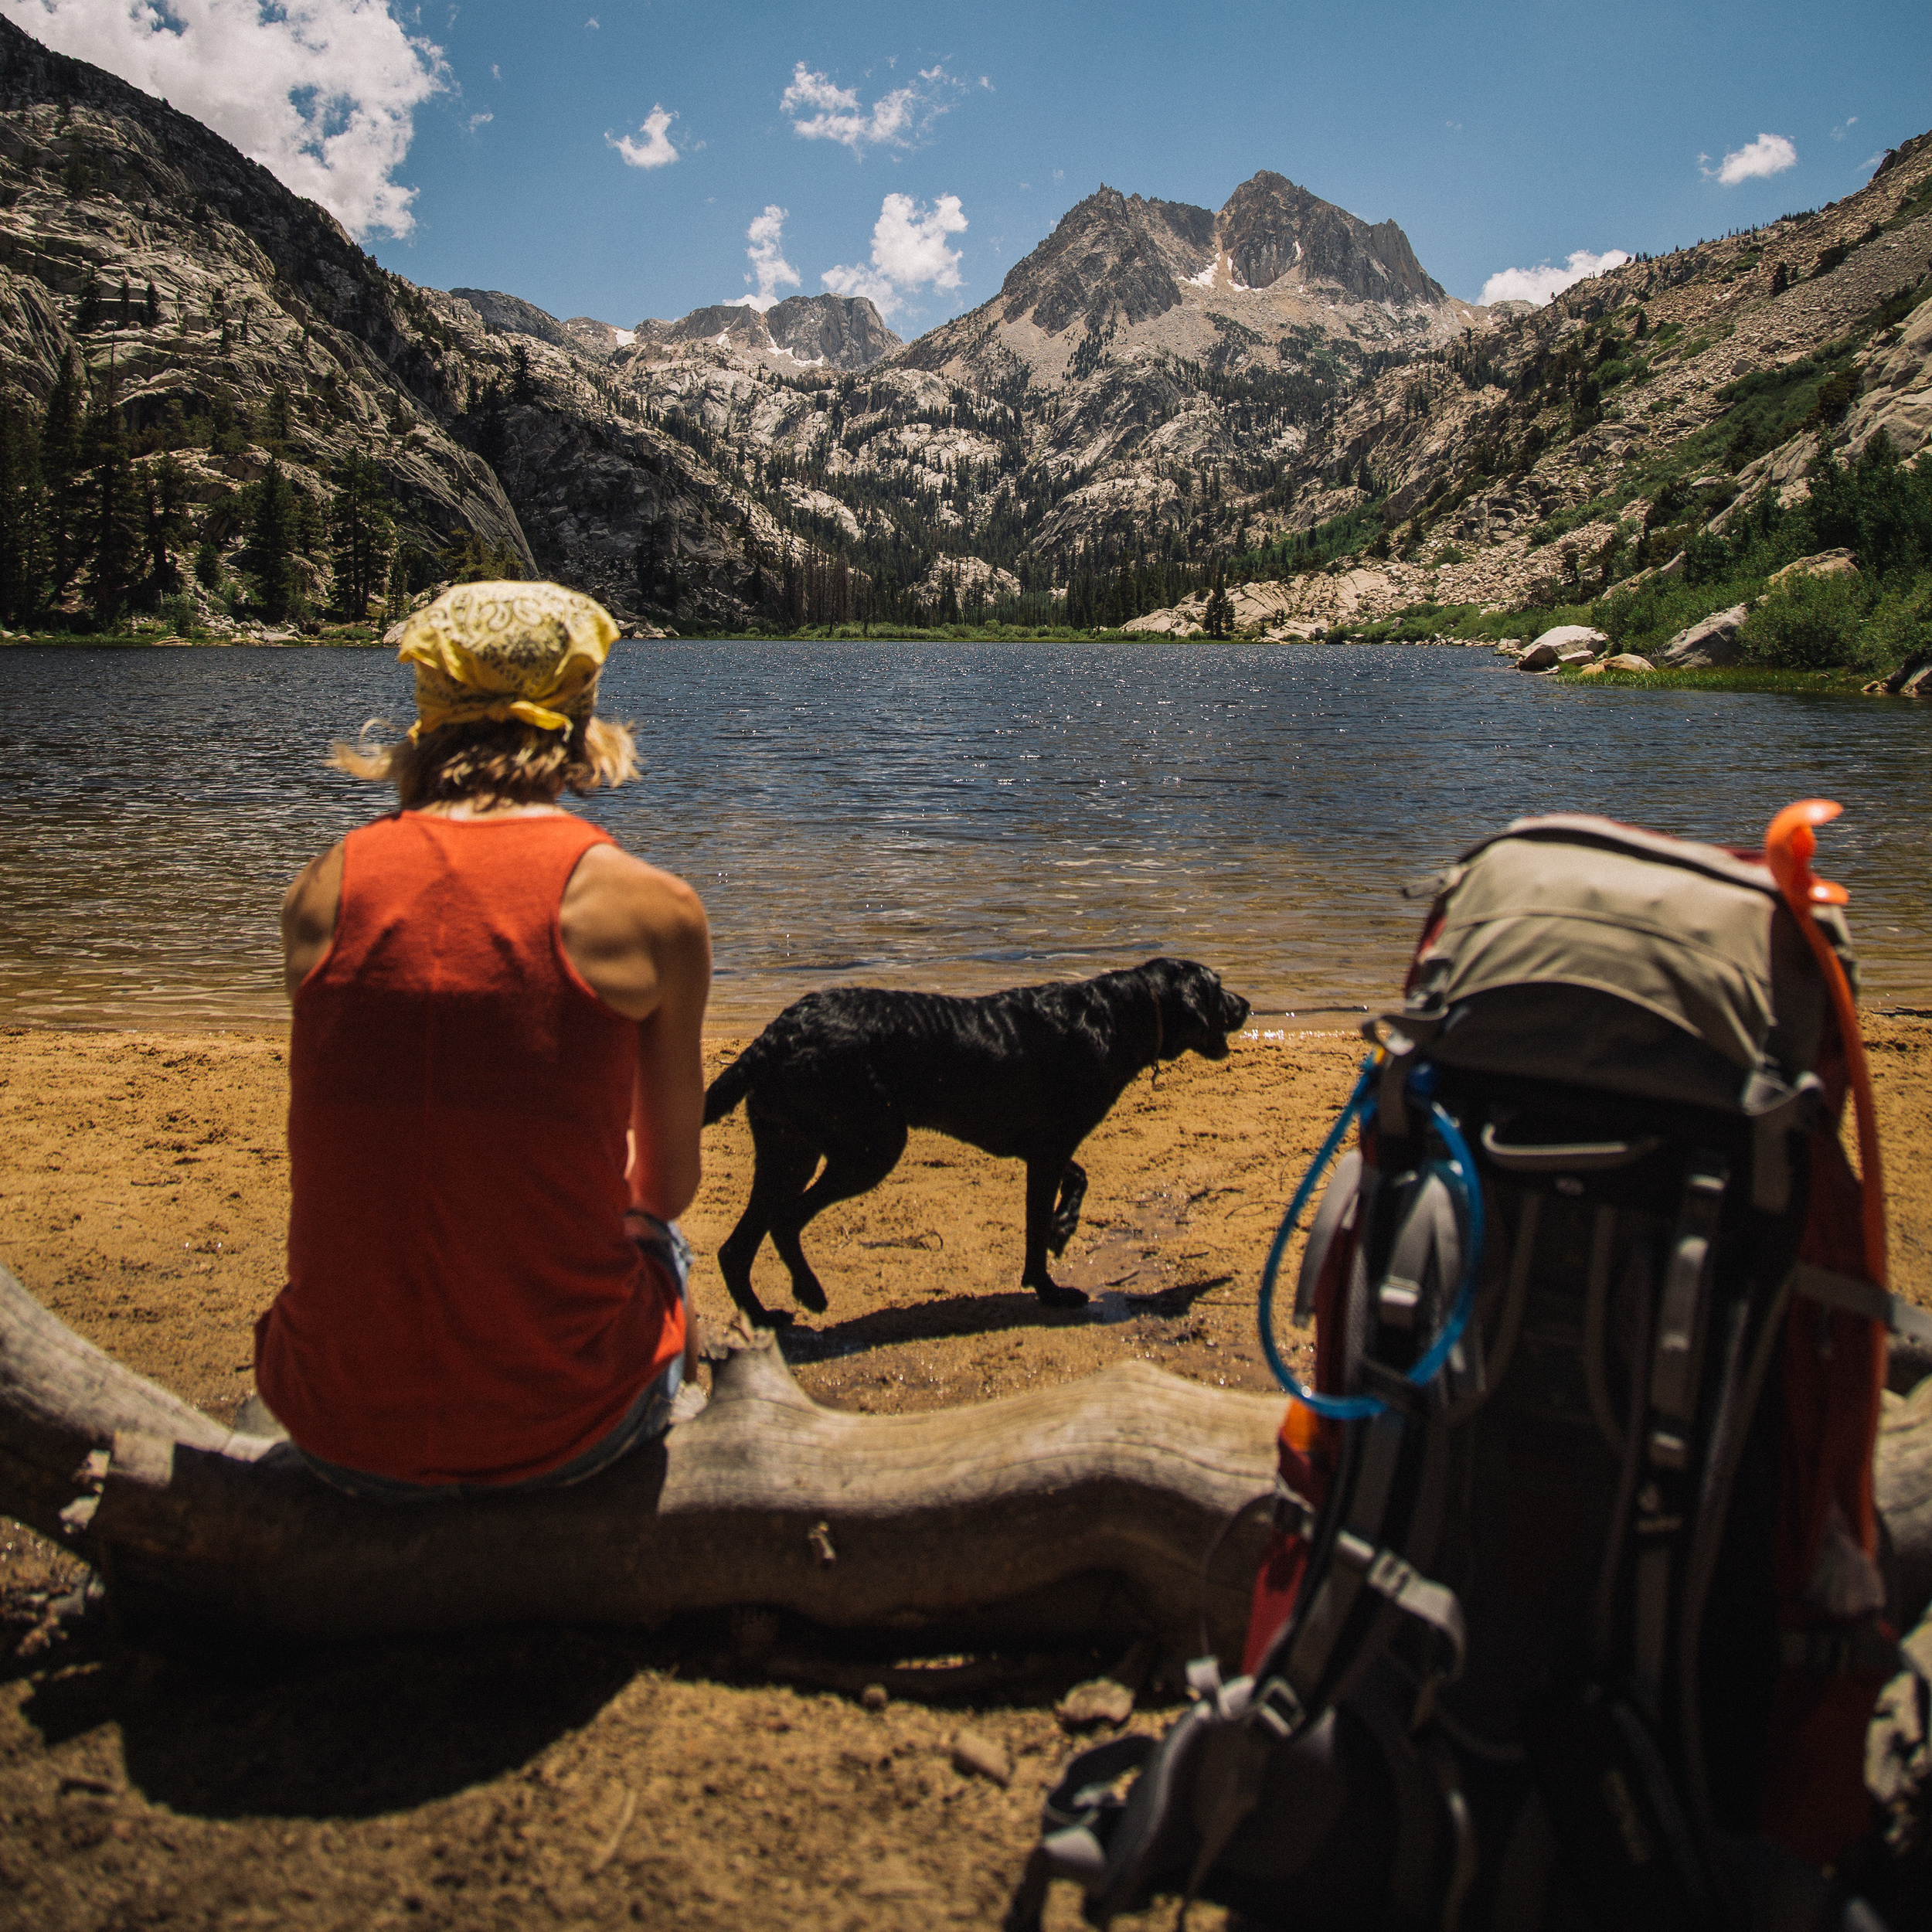 Hike up to Barney Lake in the Sierra Nevada Mountains. The beauty in this shot is my brother's one and only child, or um, dog, Evee.